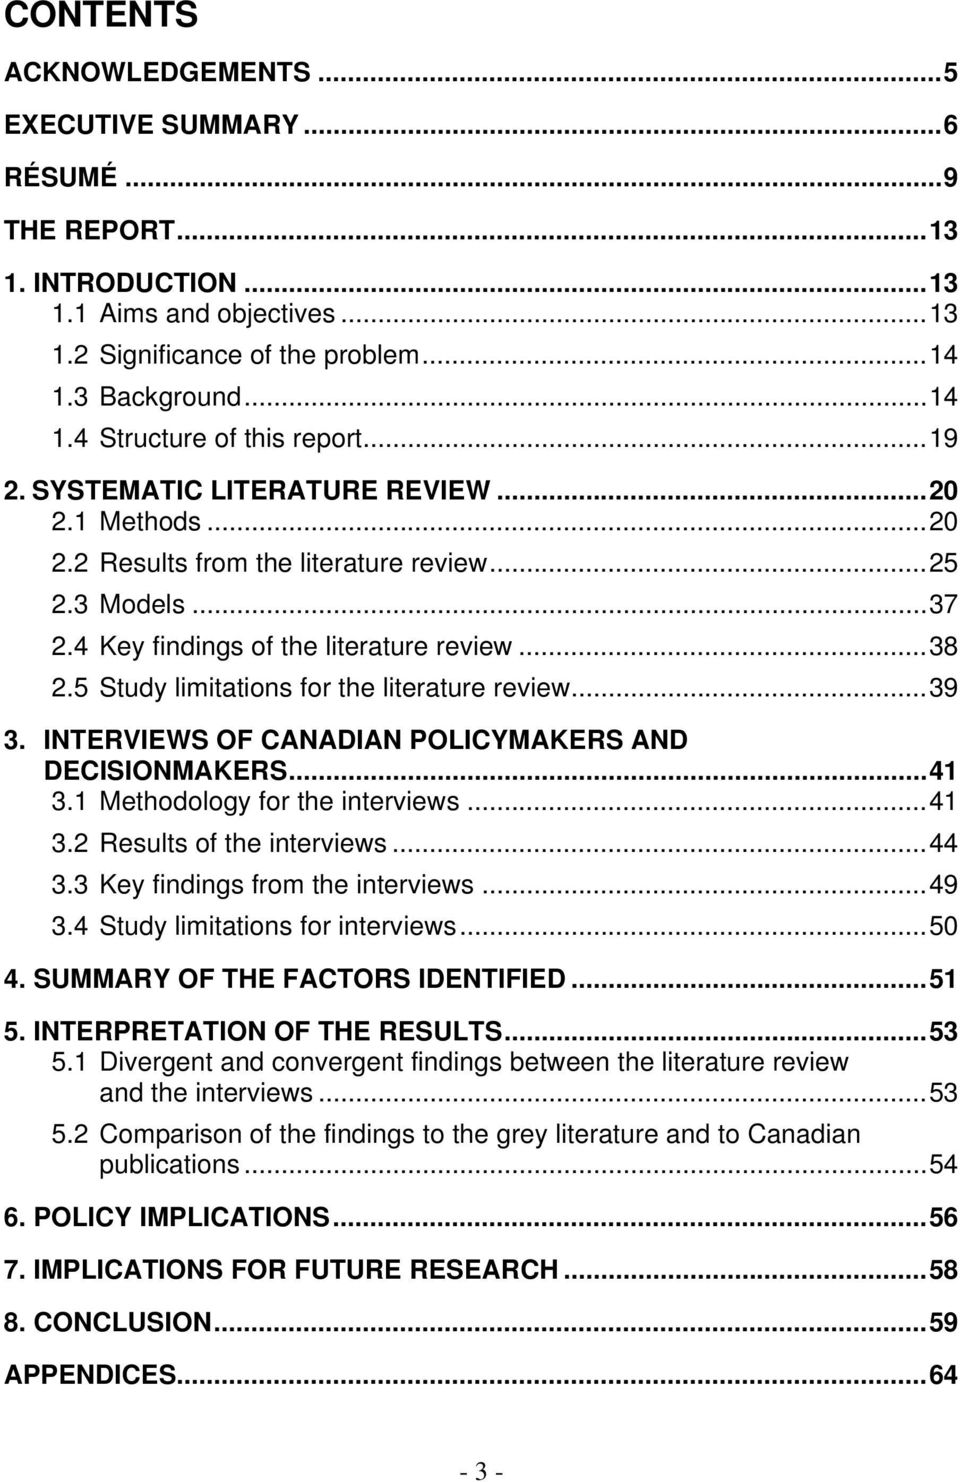 5 Study limitations for the literature review...39 3. INTERVIEWS OF CANADIAN POLICYMAKERS AND DECISIONMAKERS...41 3.1 Methodology for the interviews...41 3.2 Results of the interviews...44 3.